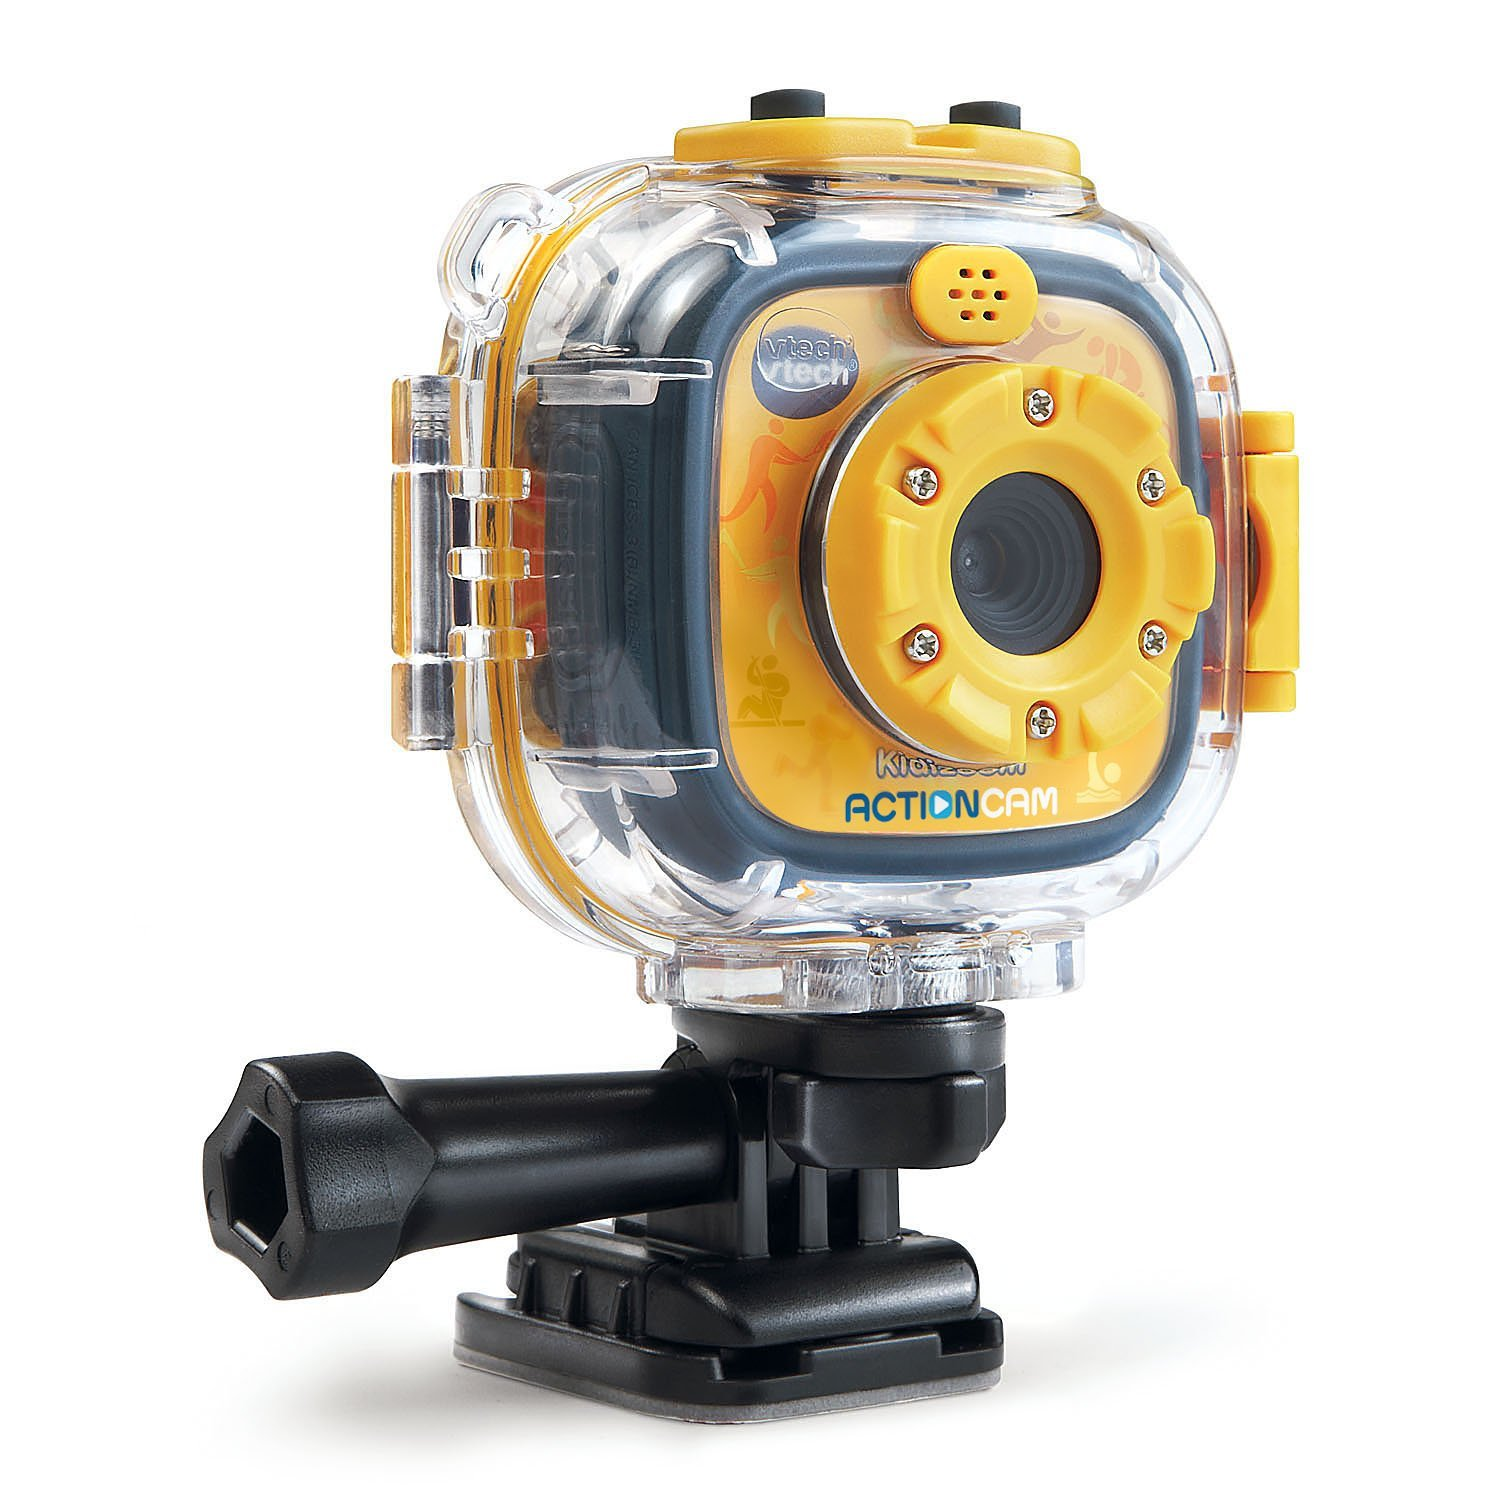 VTech Kidizoom Action Cam, Yellow Black by